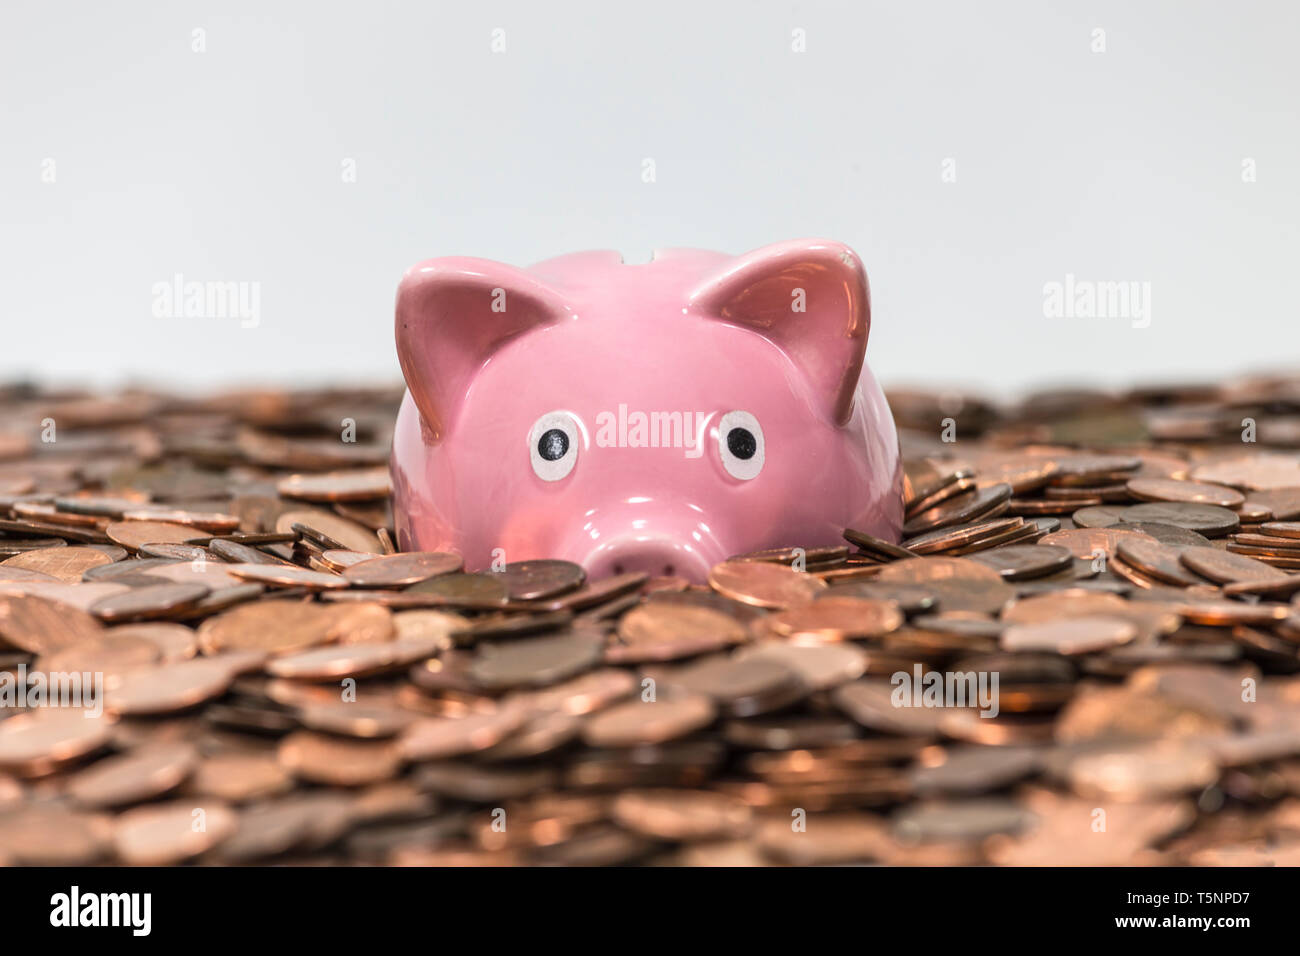 Pink piggy bank swimming in copper pennies. - Stock Image